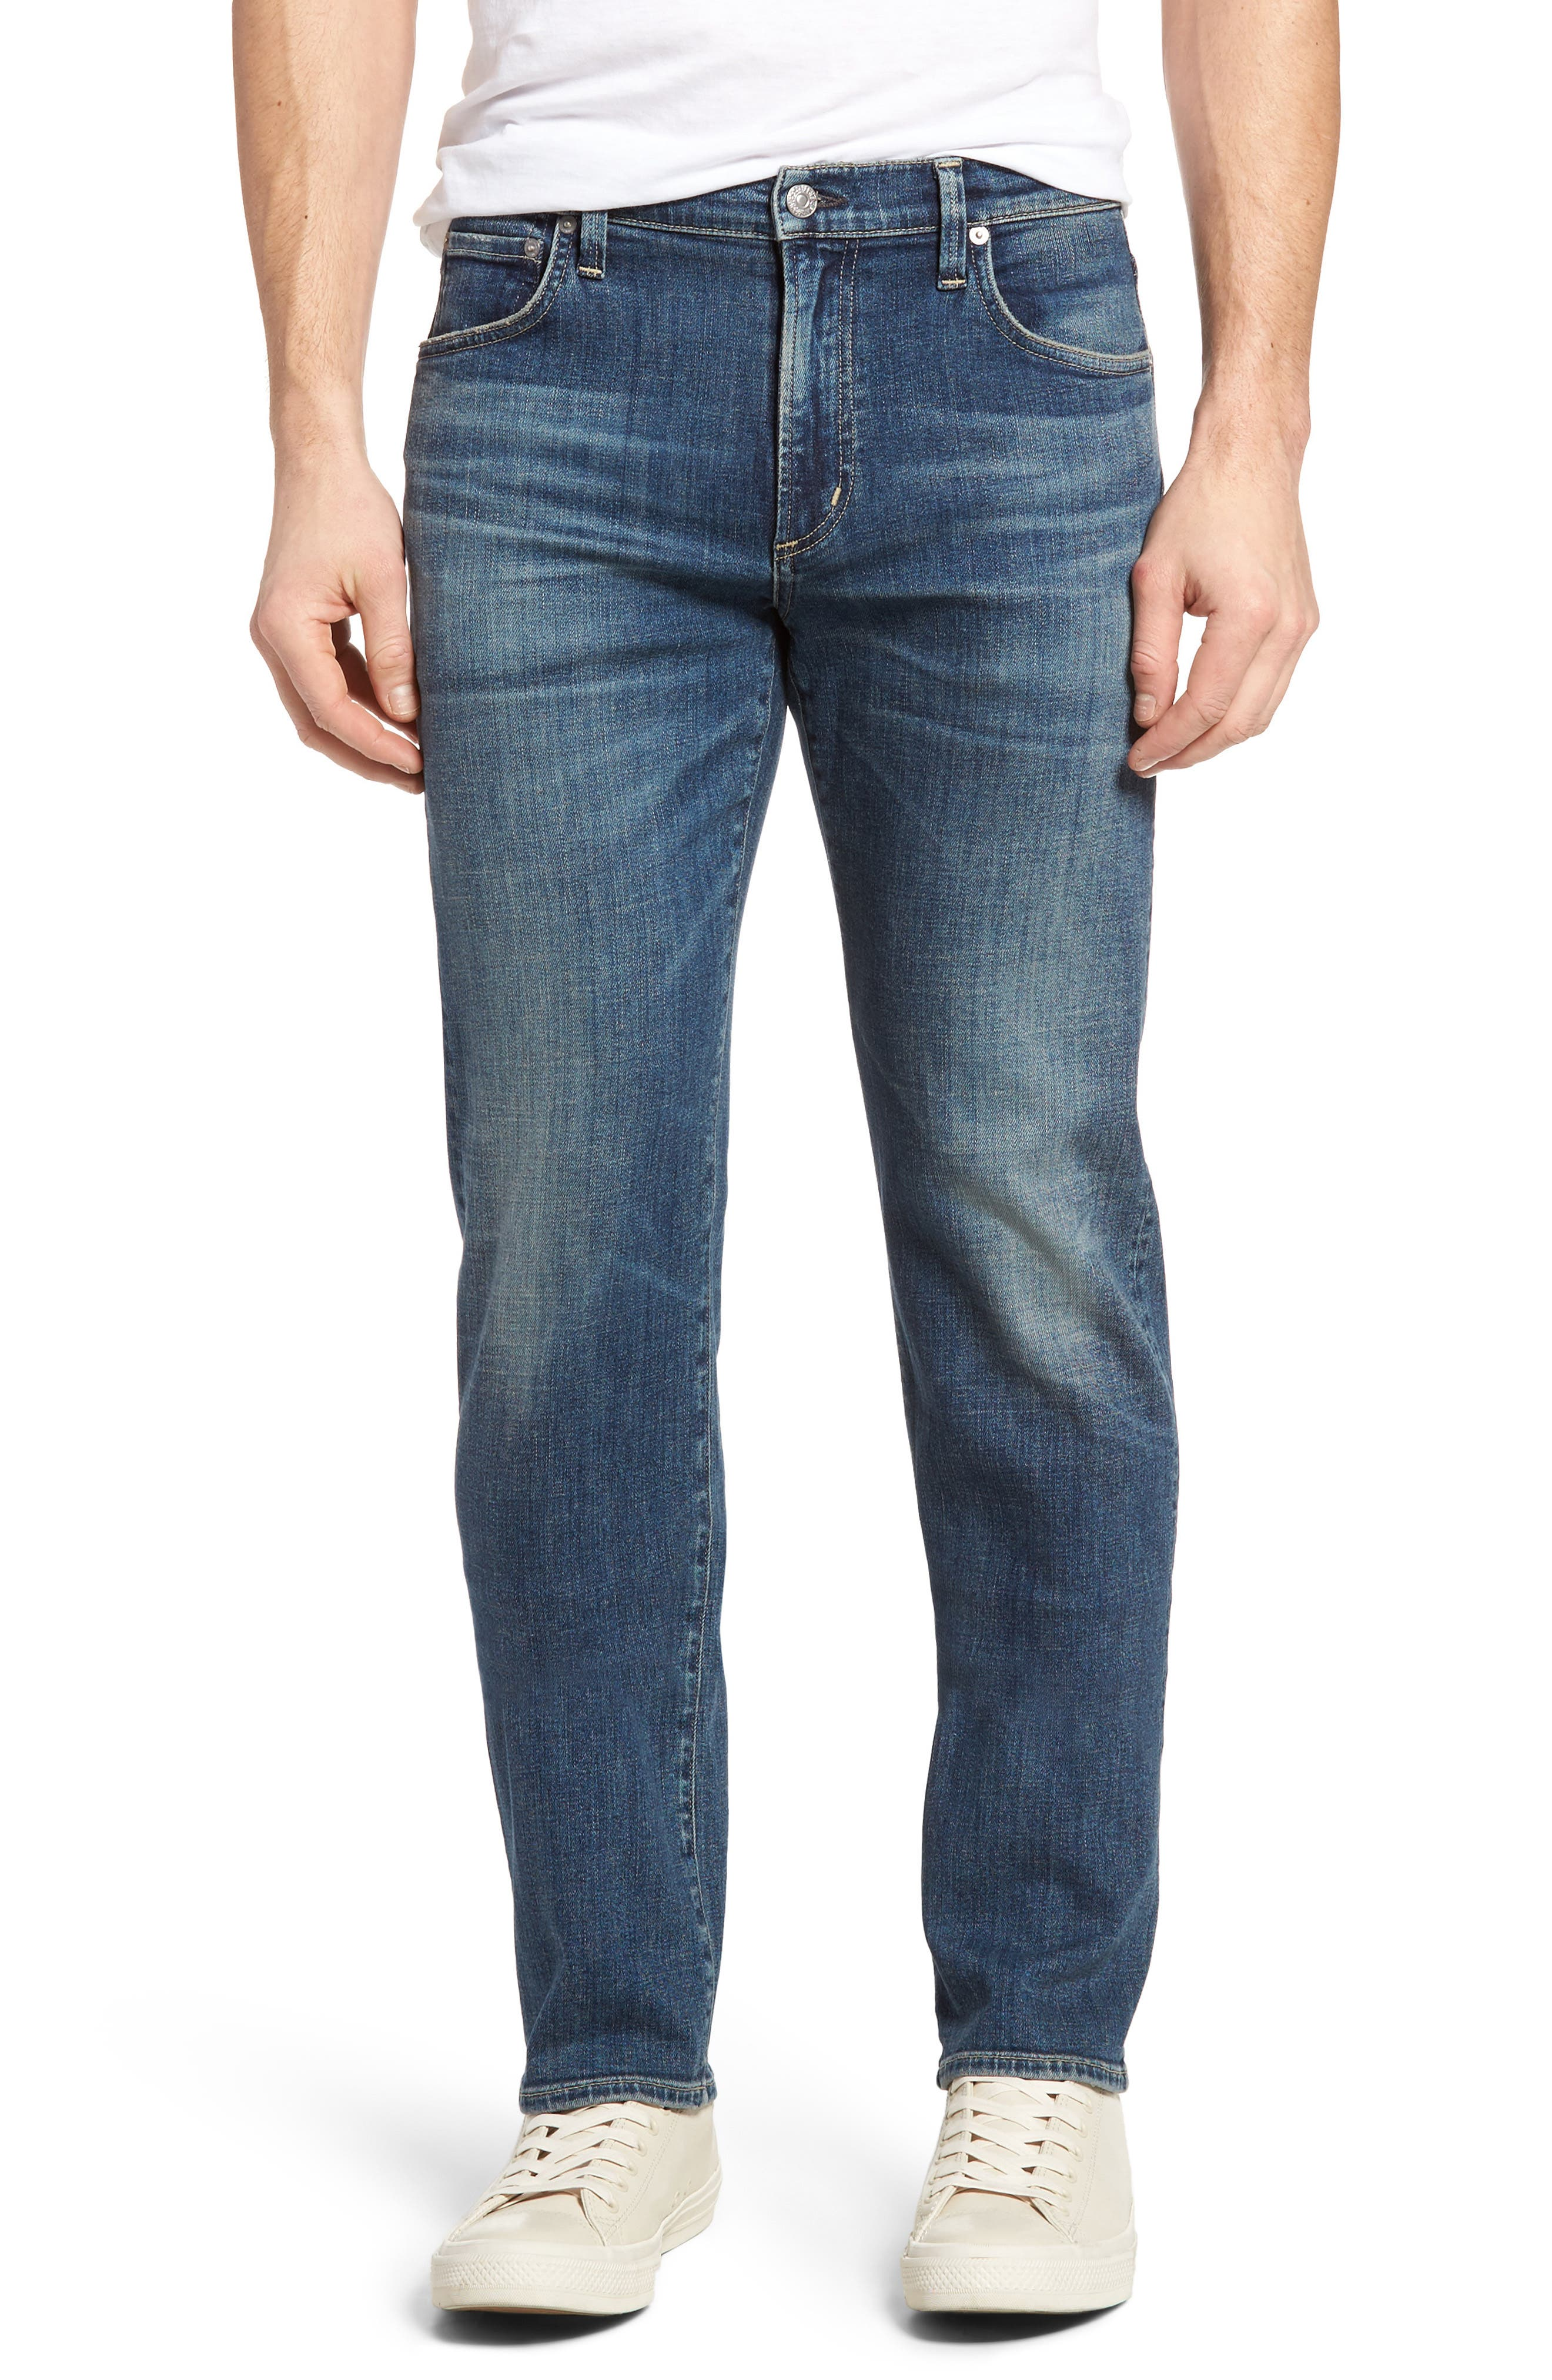 Alternate Image 1 Selected - Citizens of Humanity Sid Straight Leg Jeans (Redford)